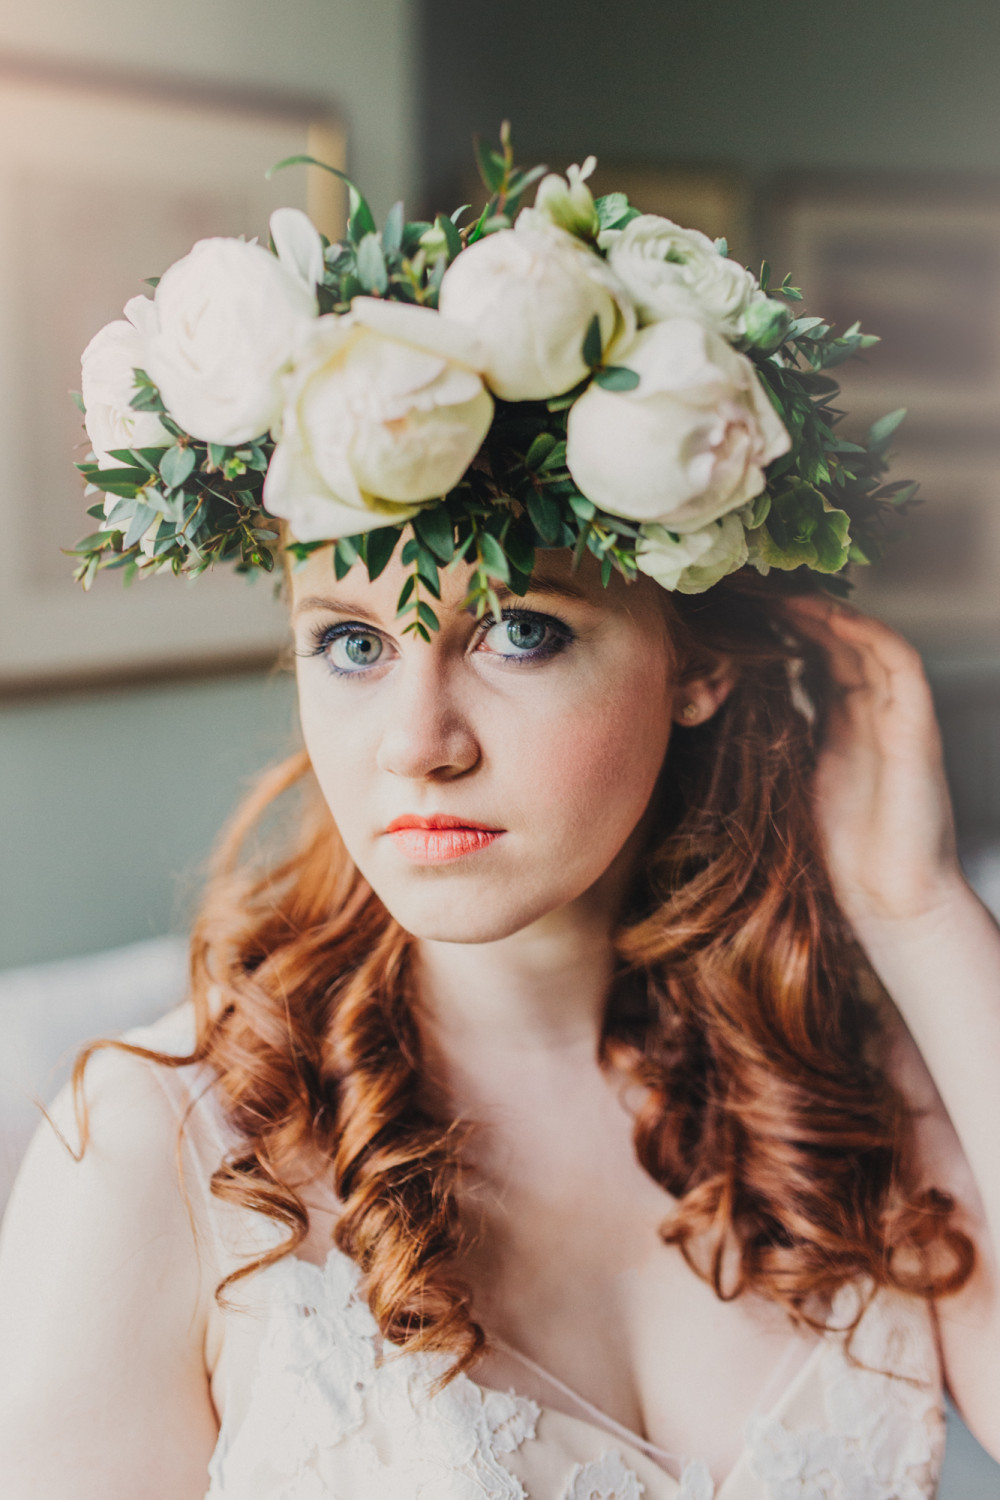 - Make Me Bridal Artist: Amazing Face Bridal Hair & Make up Dorset . Photography by: Peppermint Love . #boho #bridalmakeup #bridalhair #bridalhairandmakeup #weddinghairandmakeup #dorsetmakeupartist #dorsetmakeupandhair #dorset